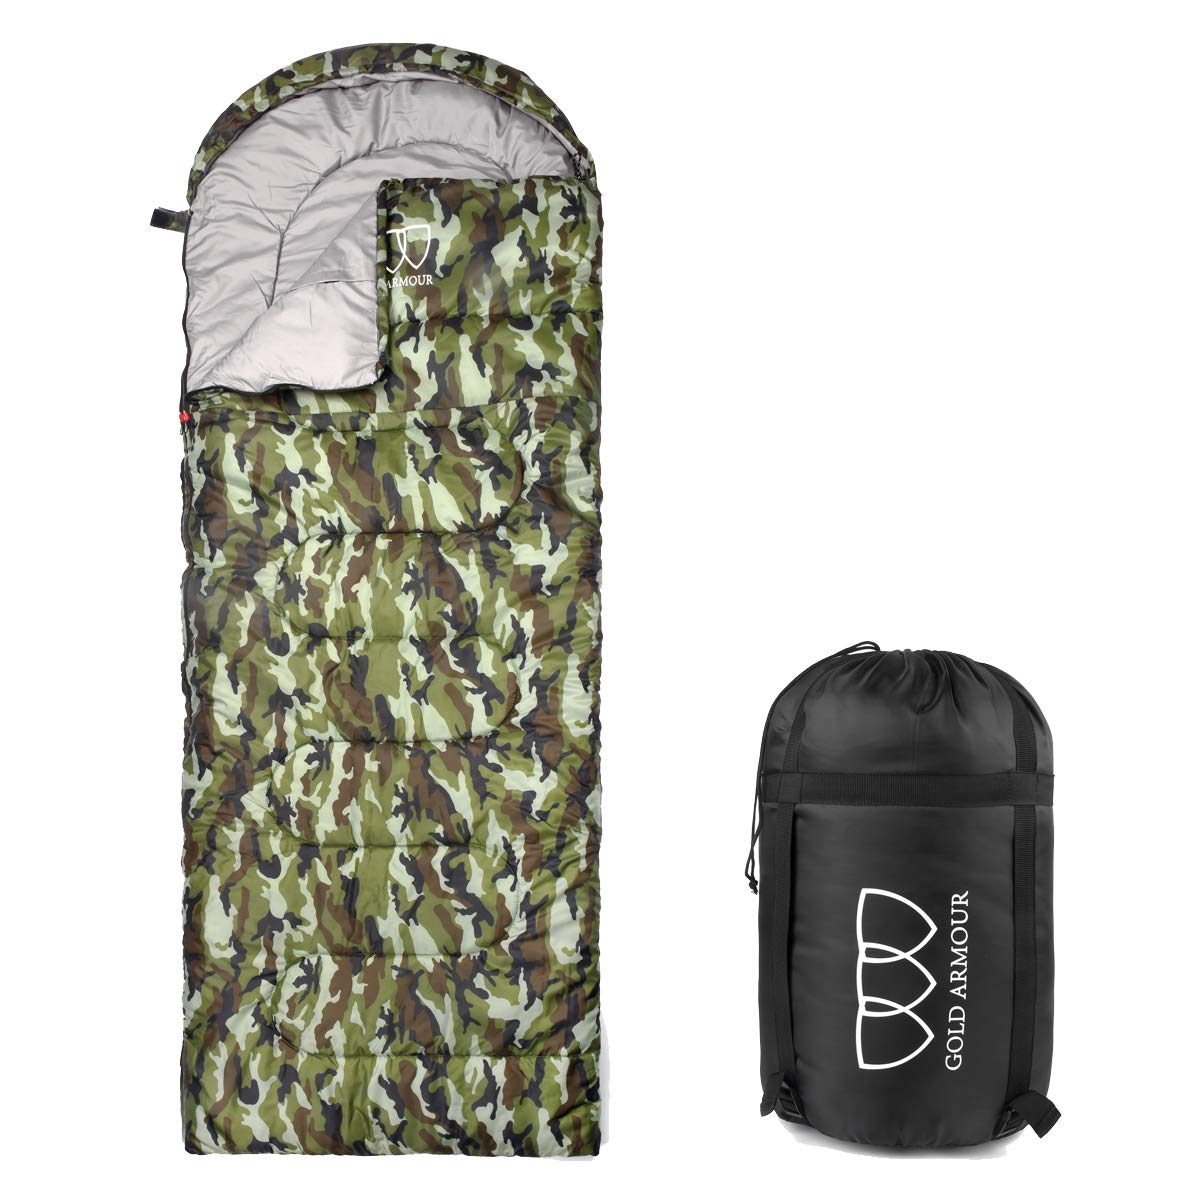 Gold Armour Sleeping Bag for Indoor and Outdoor Use - Great for Kids, Boys, Girls, Teens, Adults. Ultralight and Compact Bags for Sleepover, Backpacking, Camping (Camouflage - Right Zipper) by Gold Armour